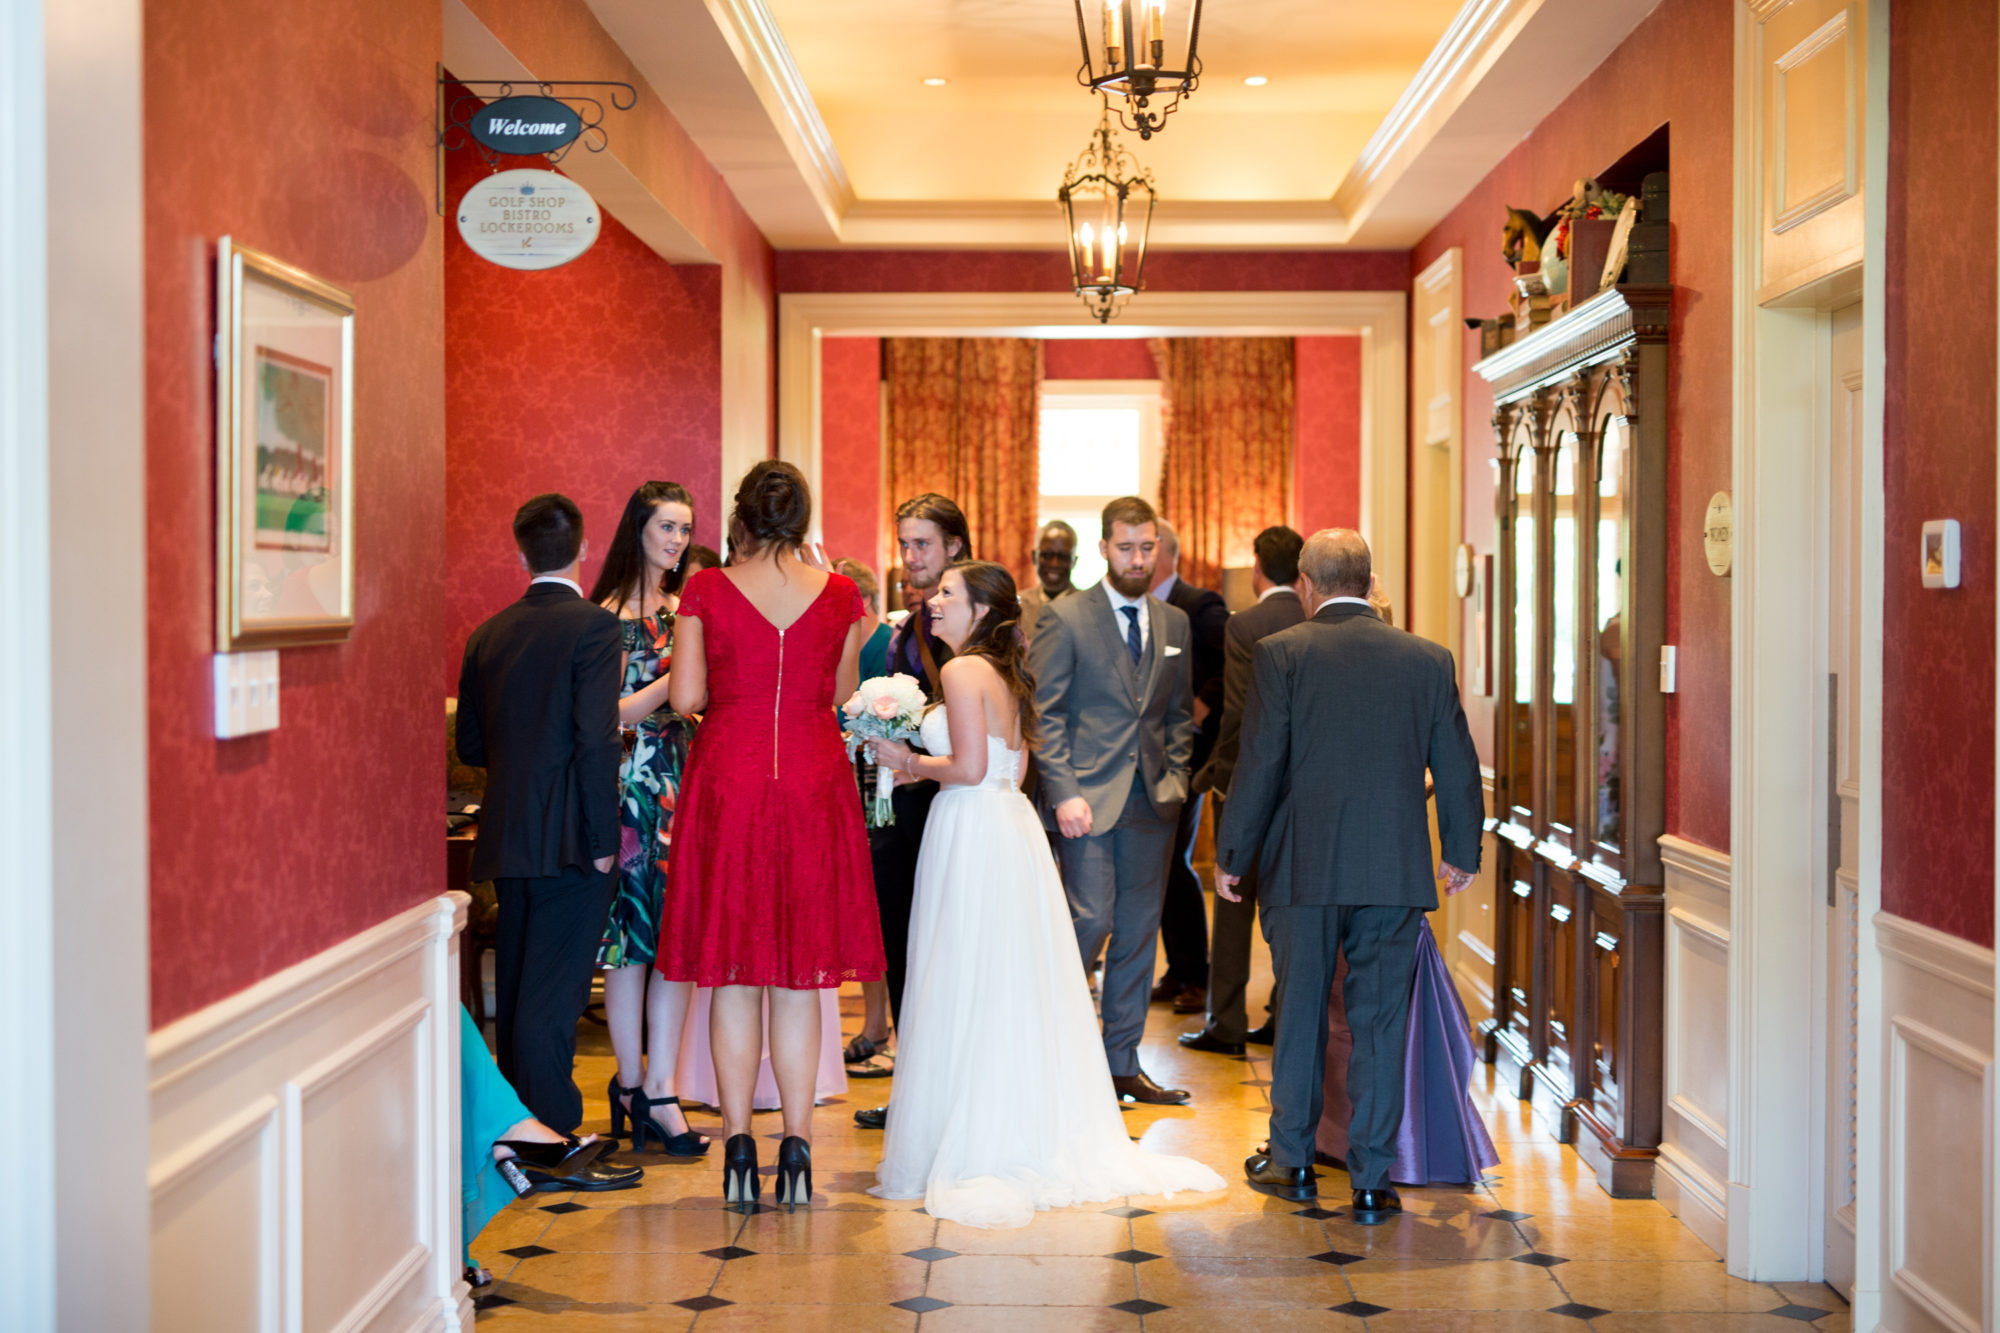 Reception Candid Wedding King City Zsuzsi Pal Photography